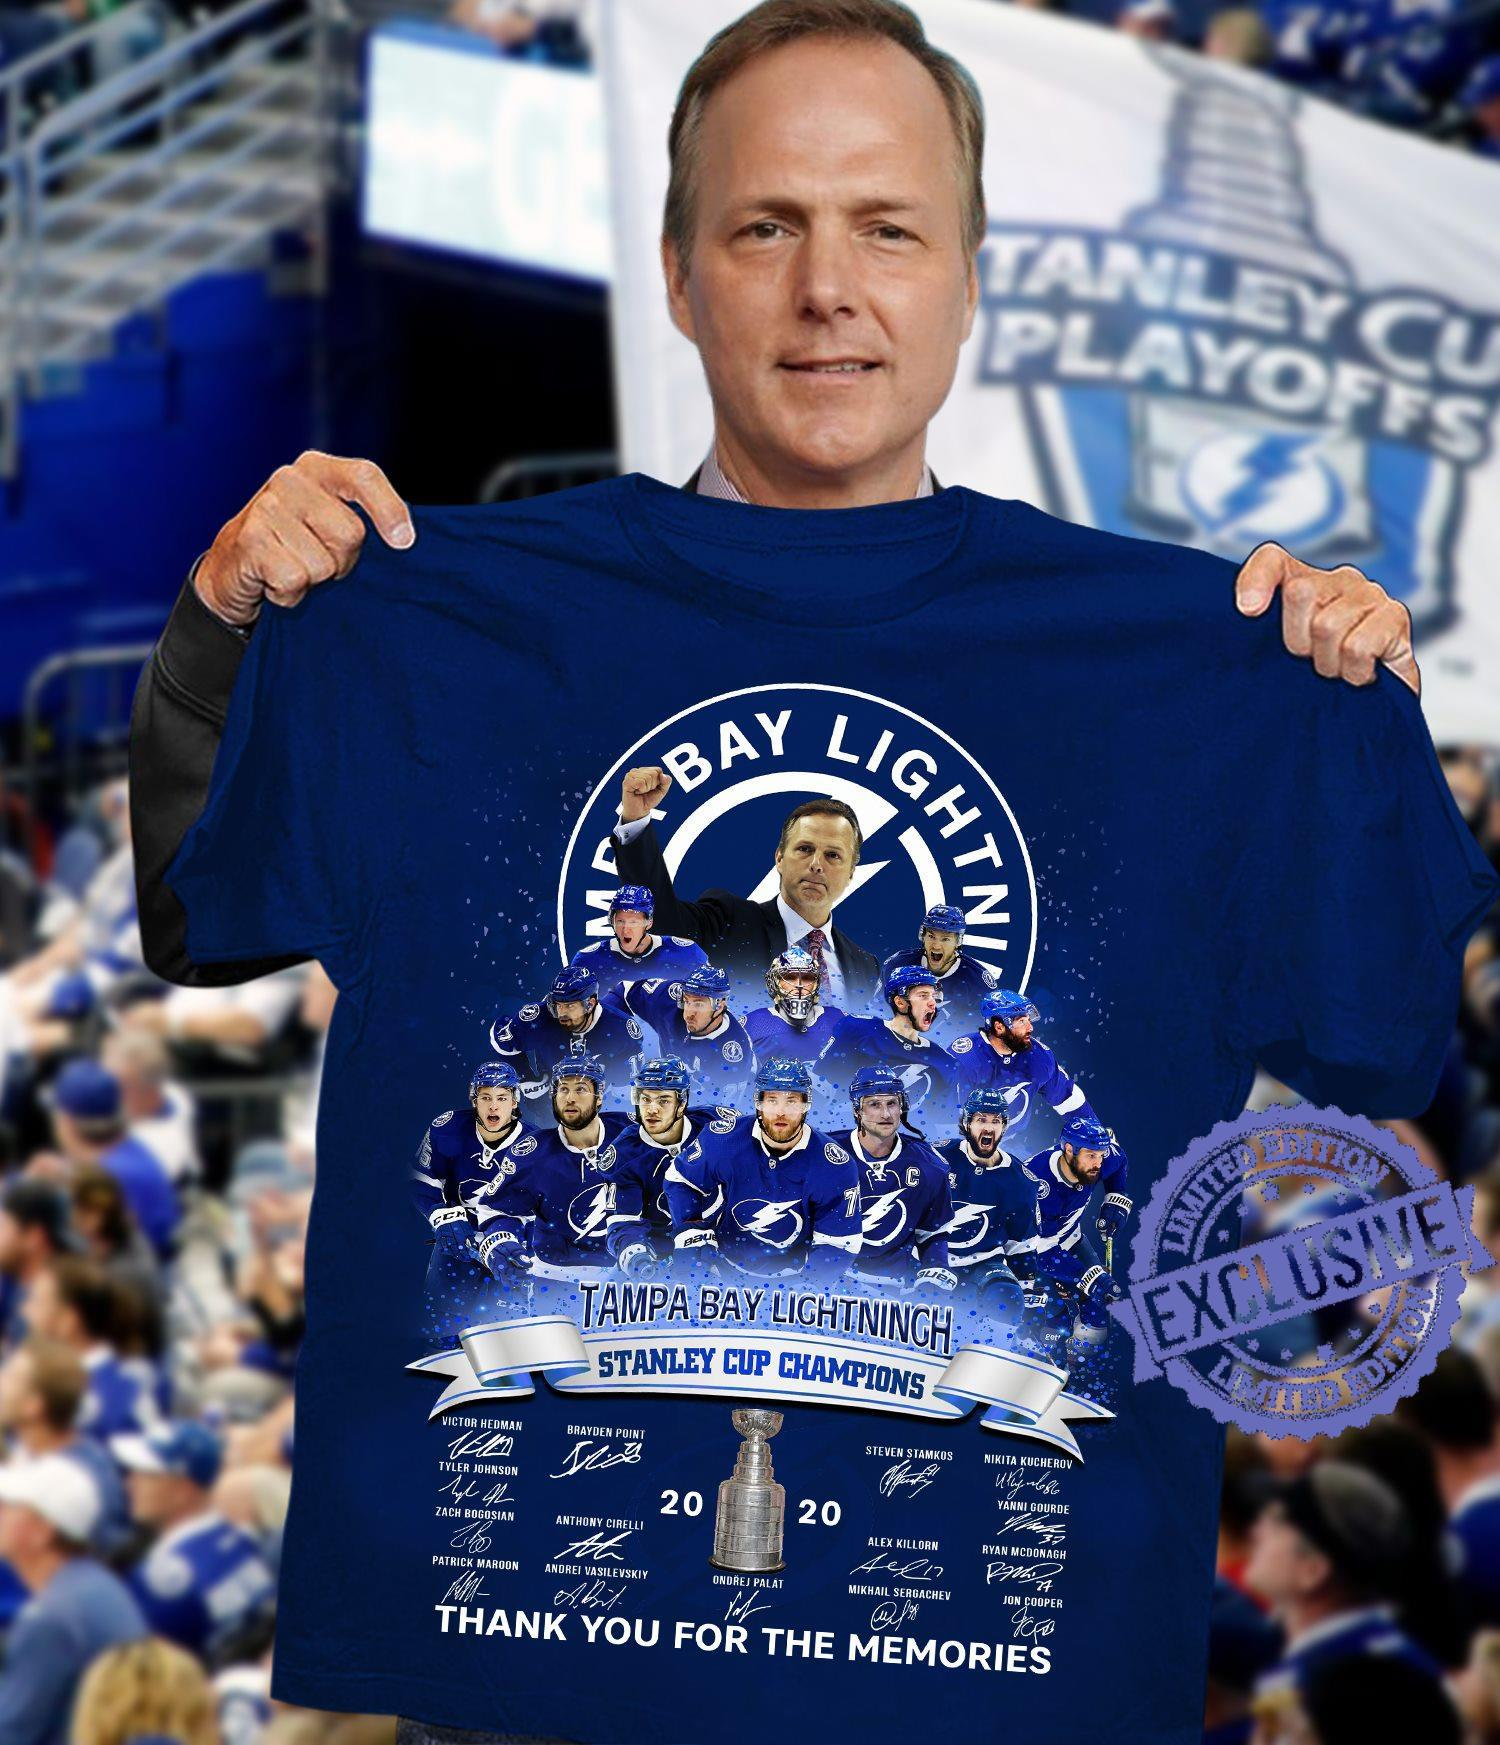 Tampa bay lightning stanley cup champions thank you for the memories shirt